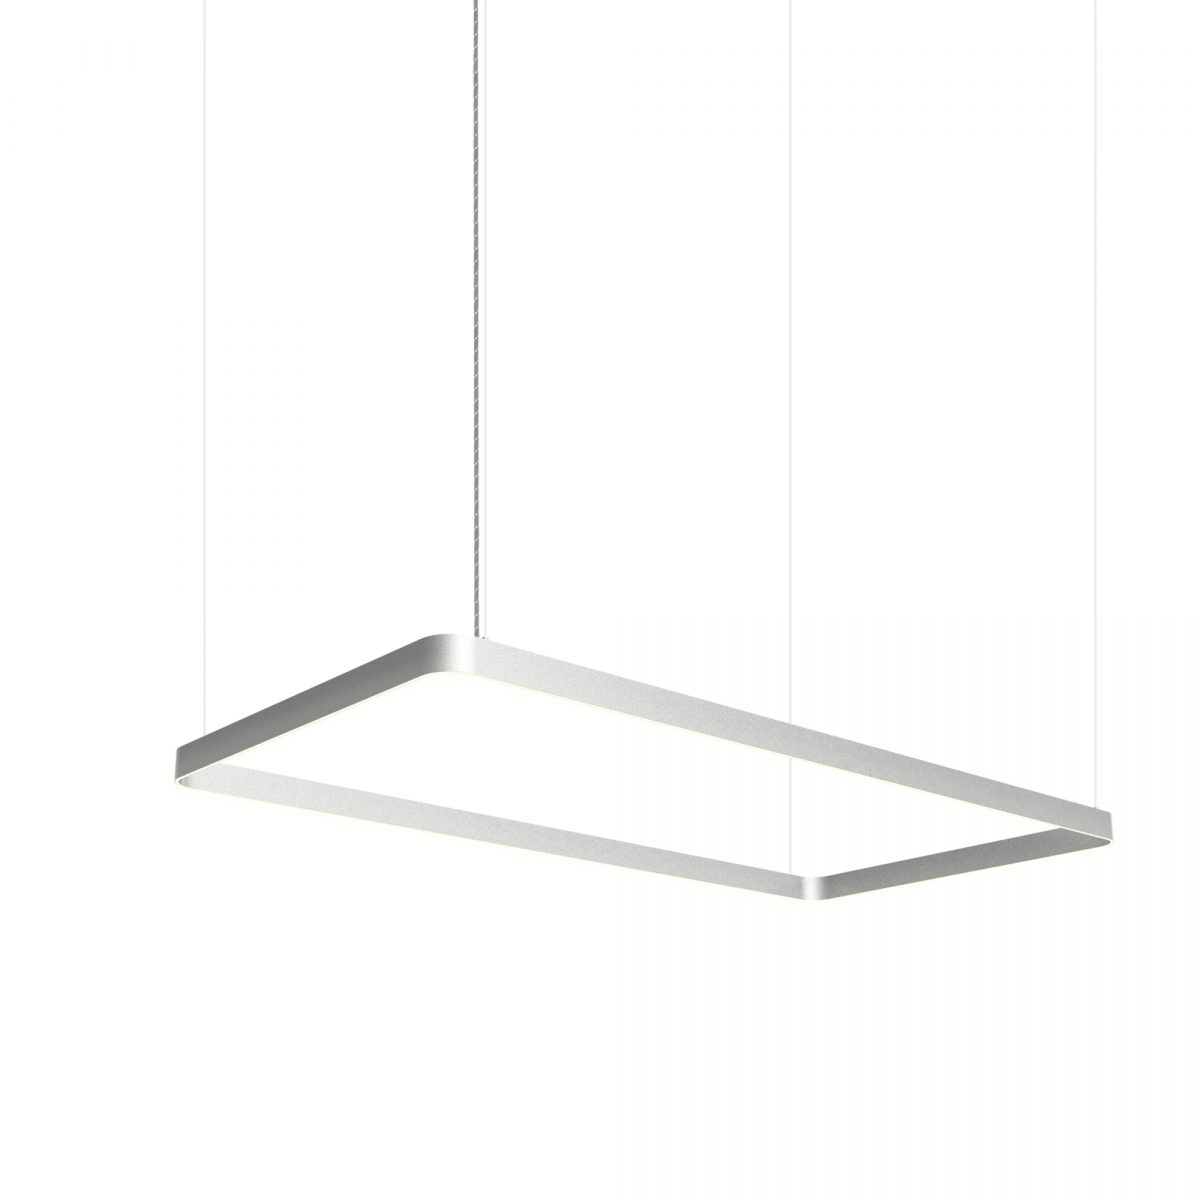 JSPR Eden 75×150 Silver Rectangle